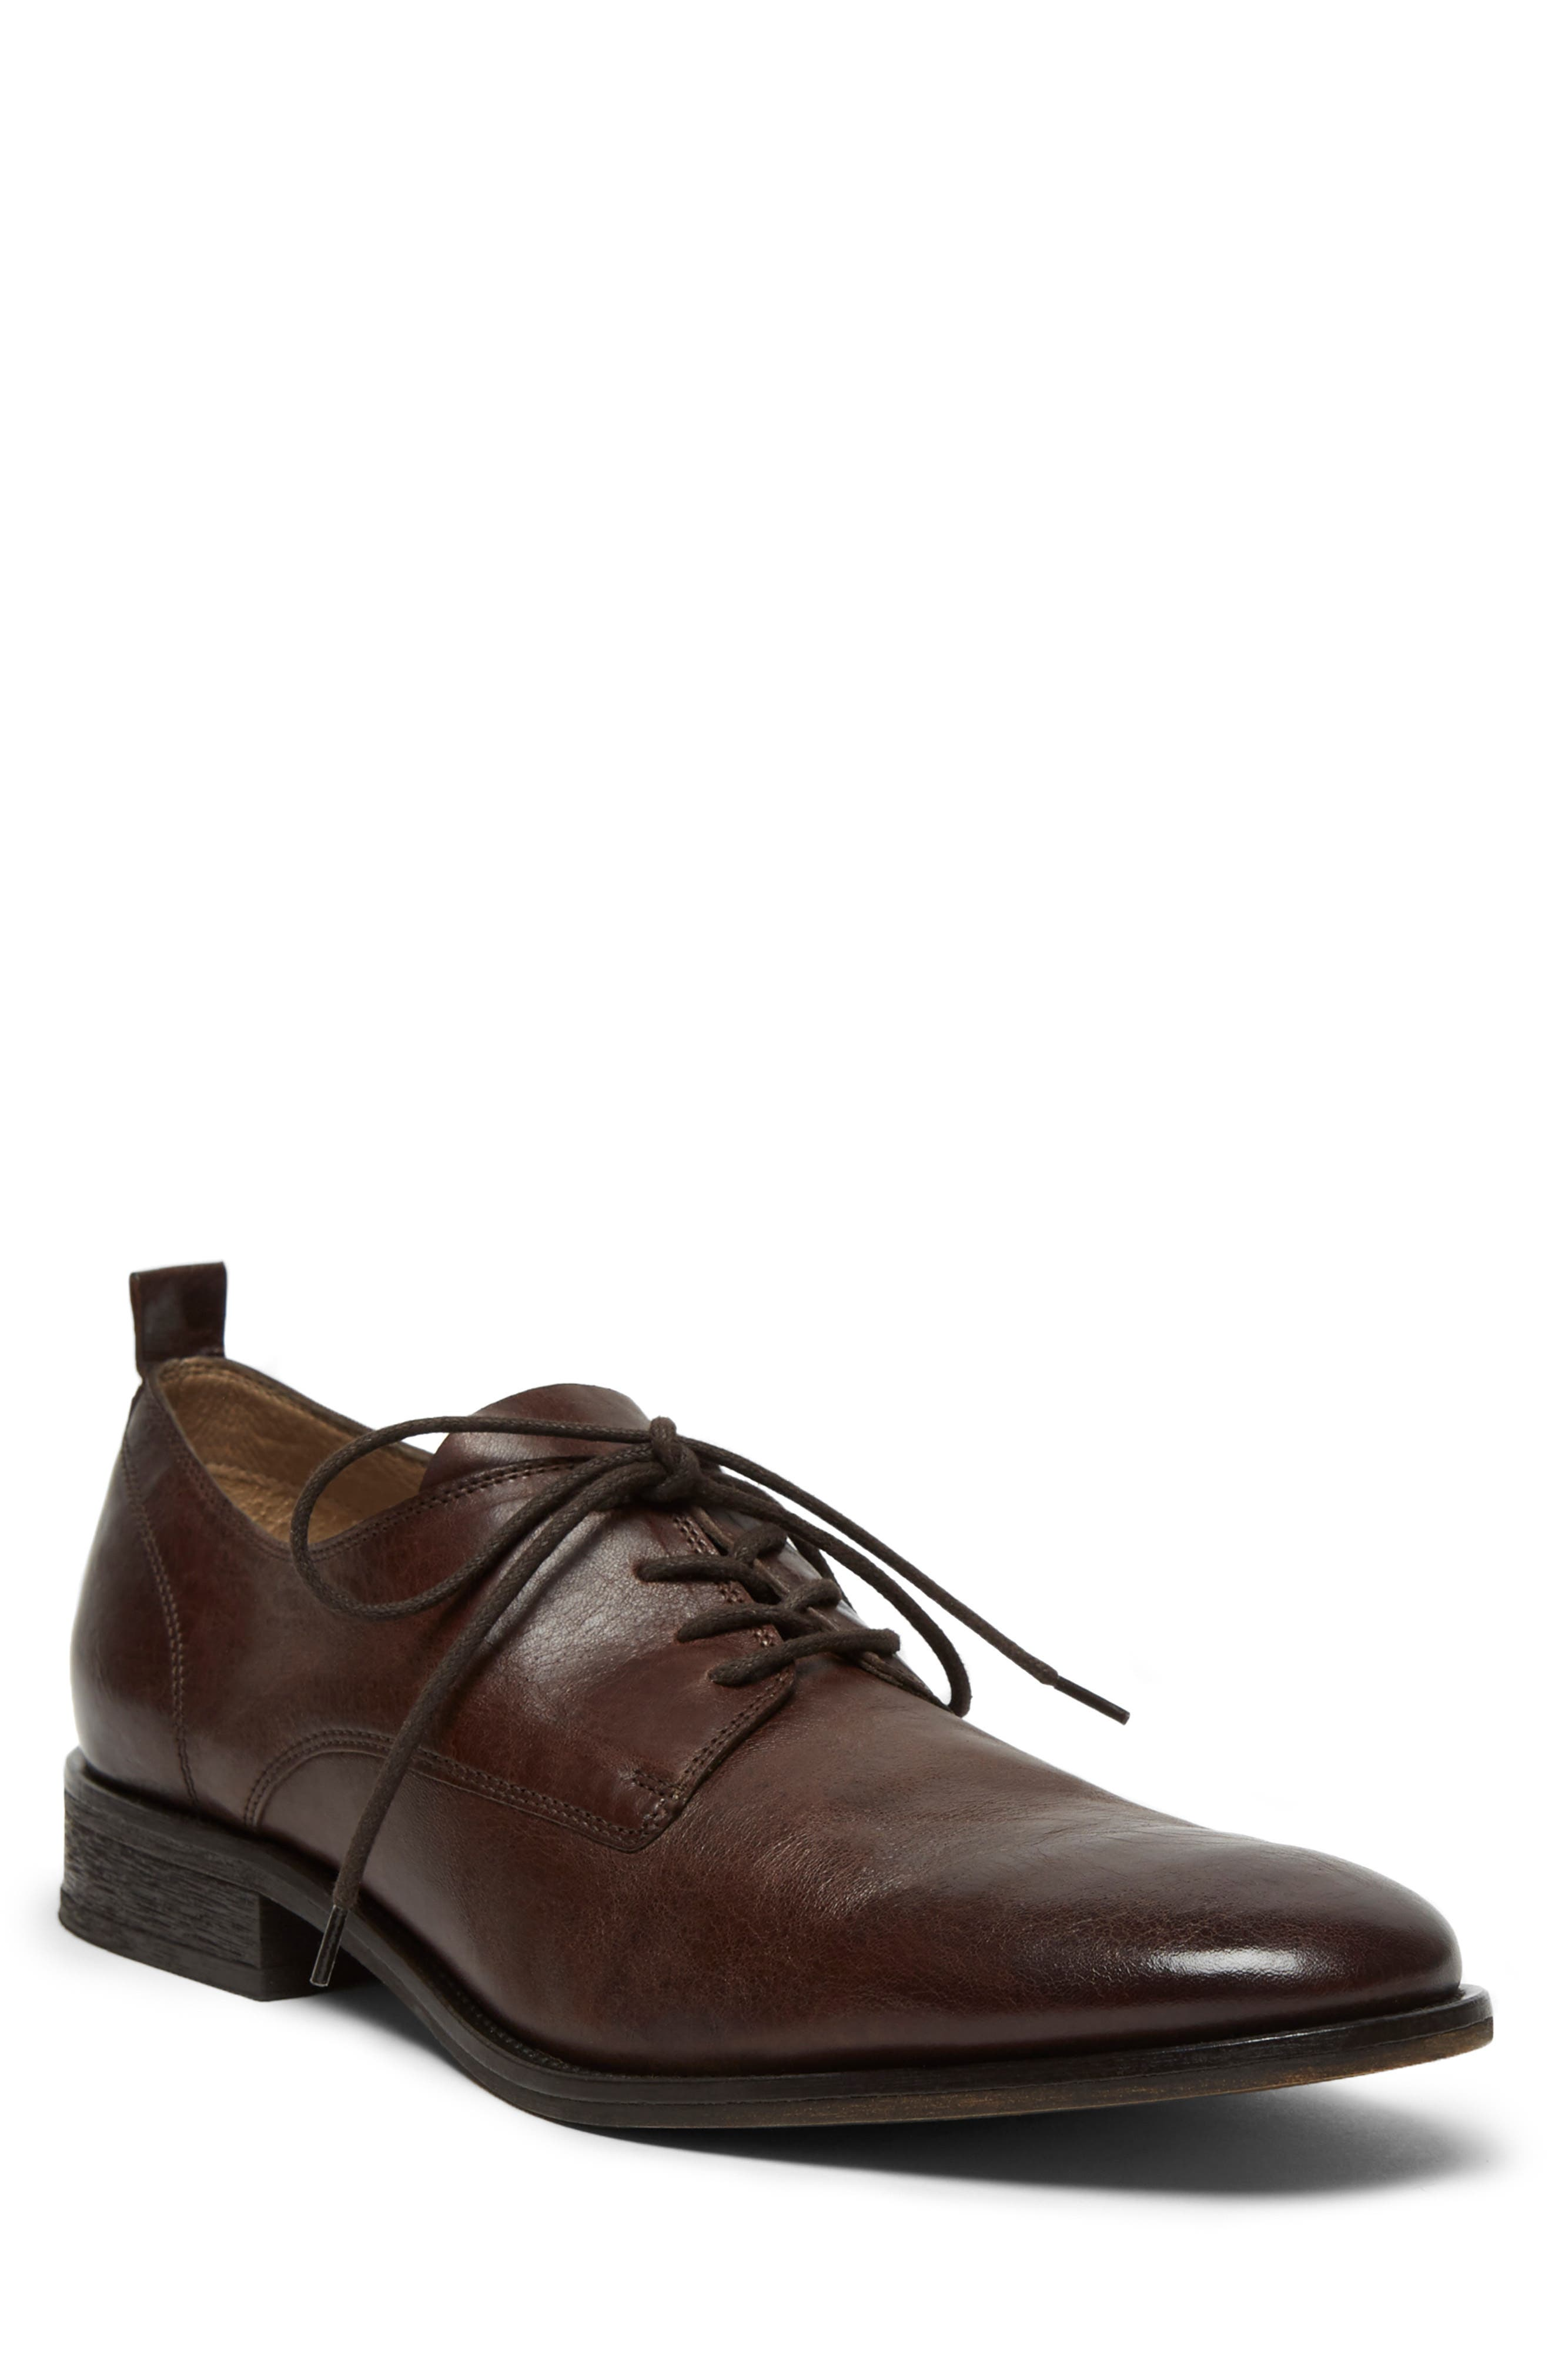 Indio Plain Toe Derby,                             Main thumbnail 1, color,                             BROWN LEATHER